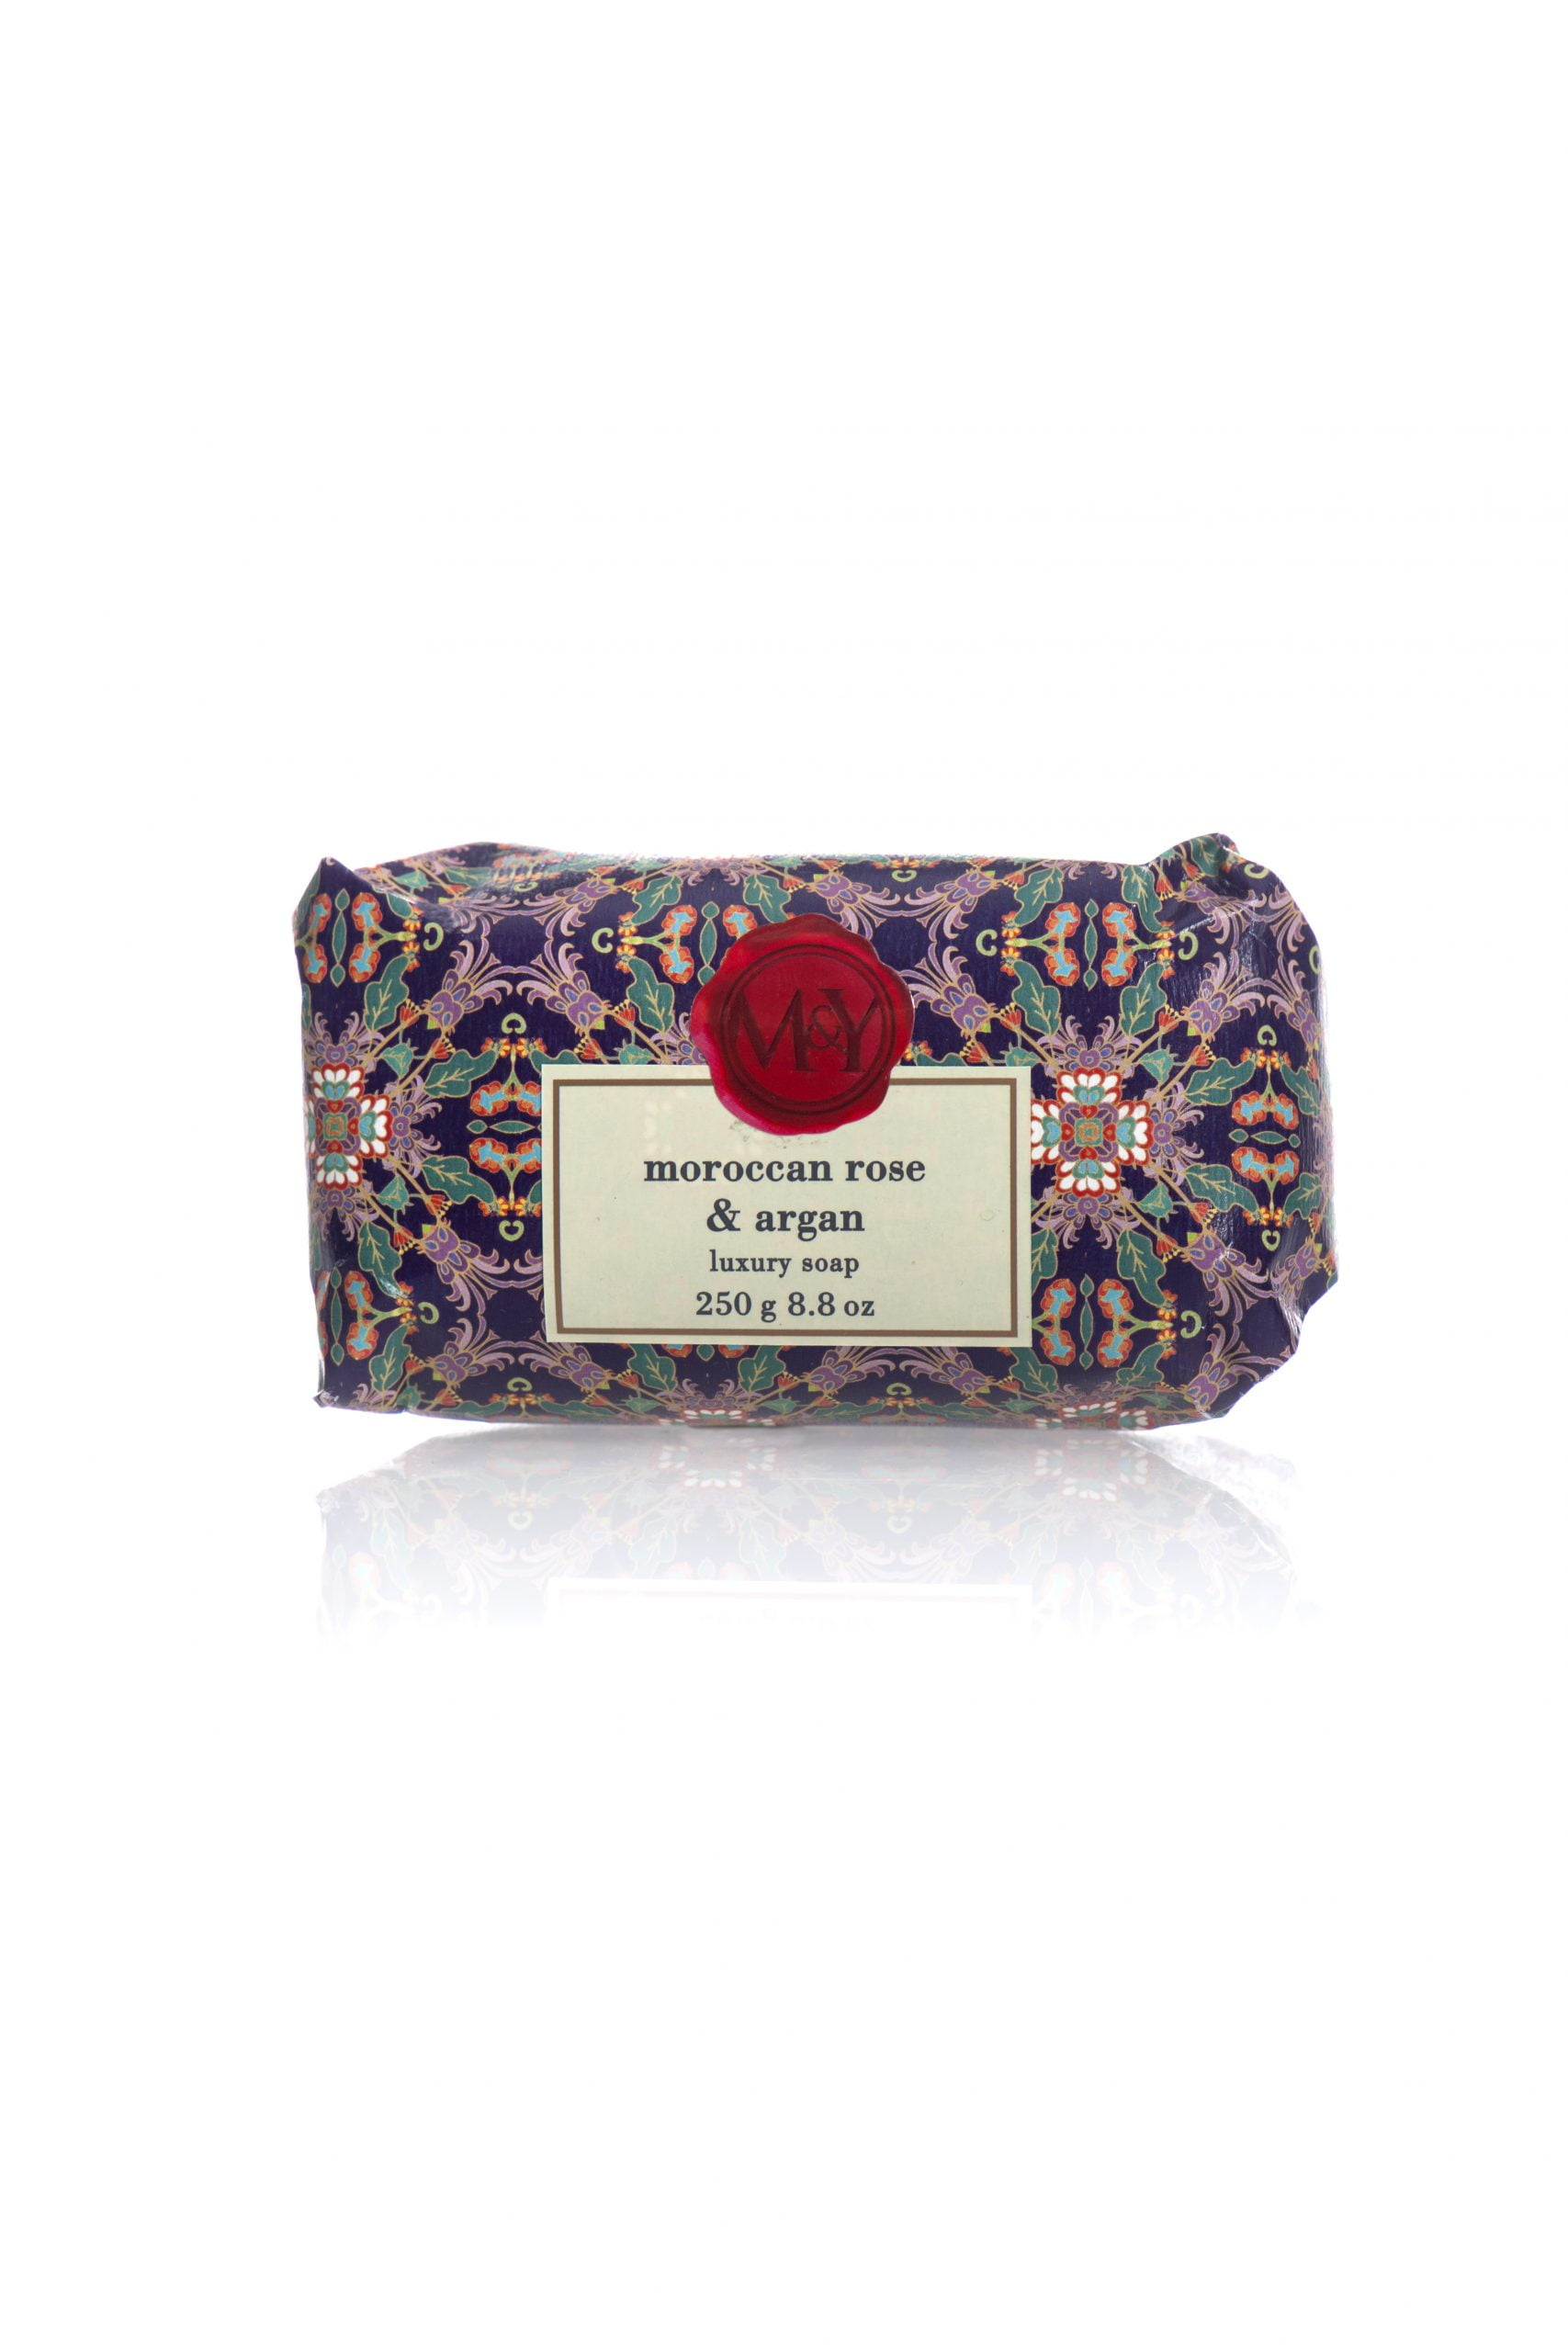 MY-Moroccan-Rose-Argan-250g-Luxury-Soap-scaled-1.jpg